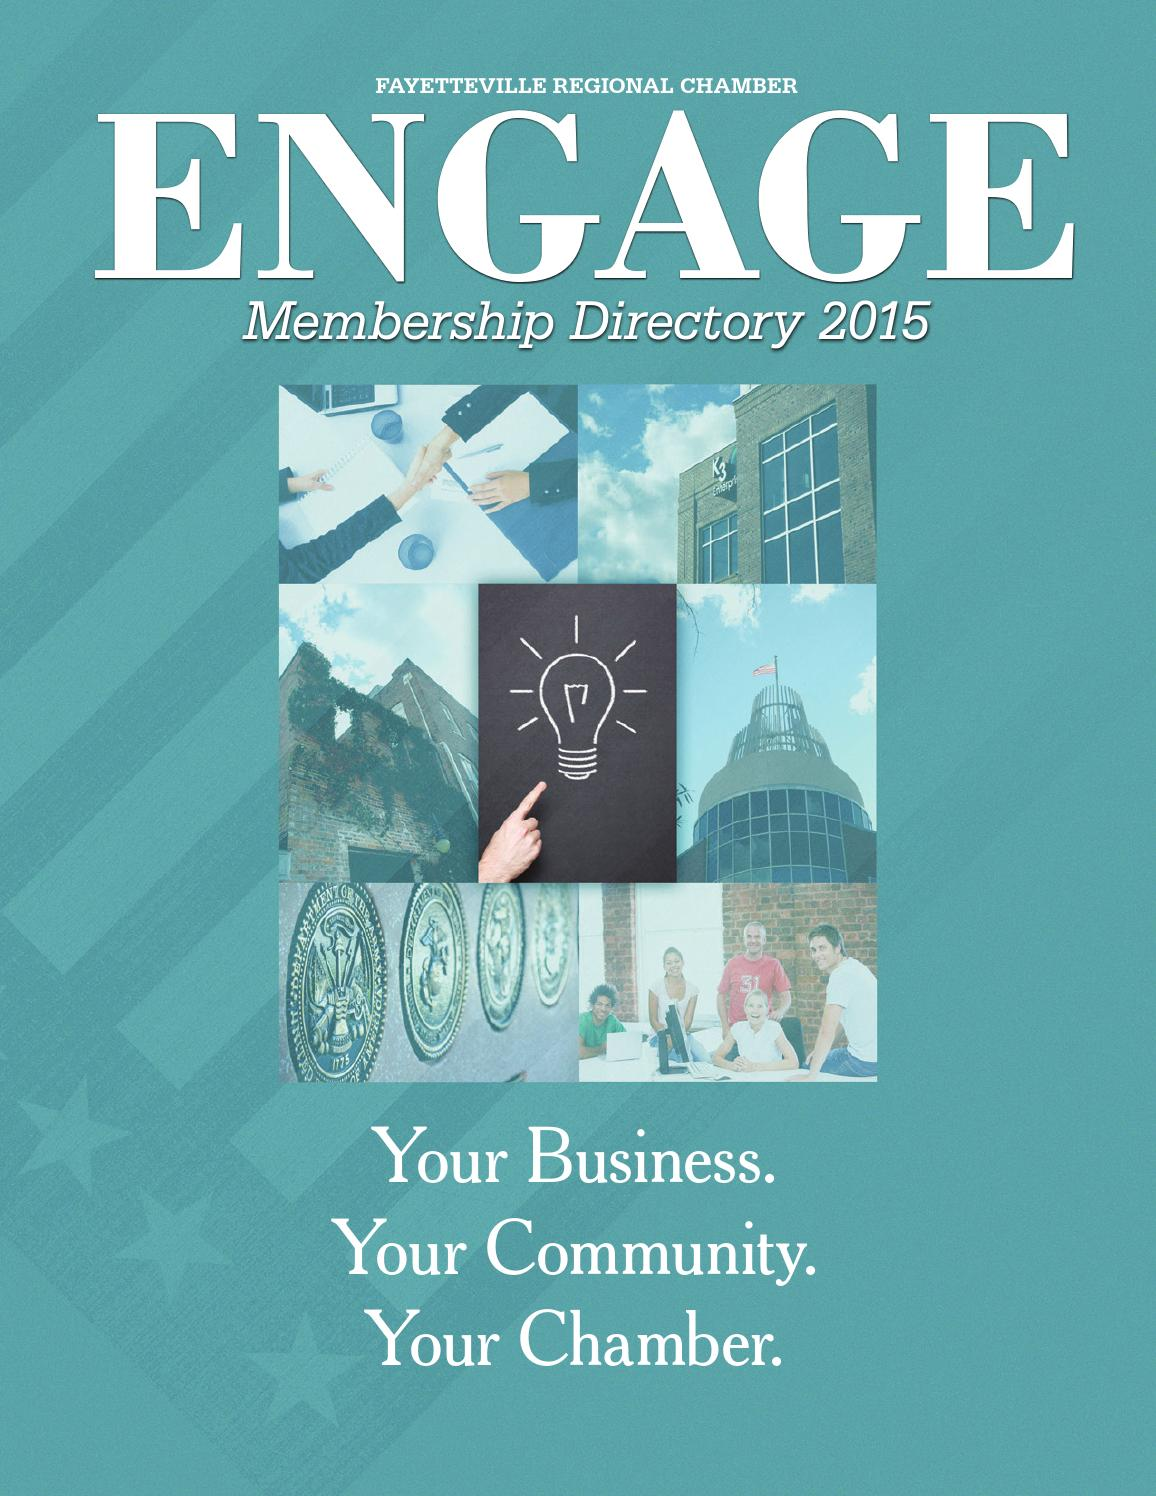 Engagedir2014 by annette winter issuu 1betcityfo Image collections